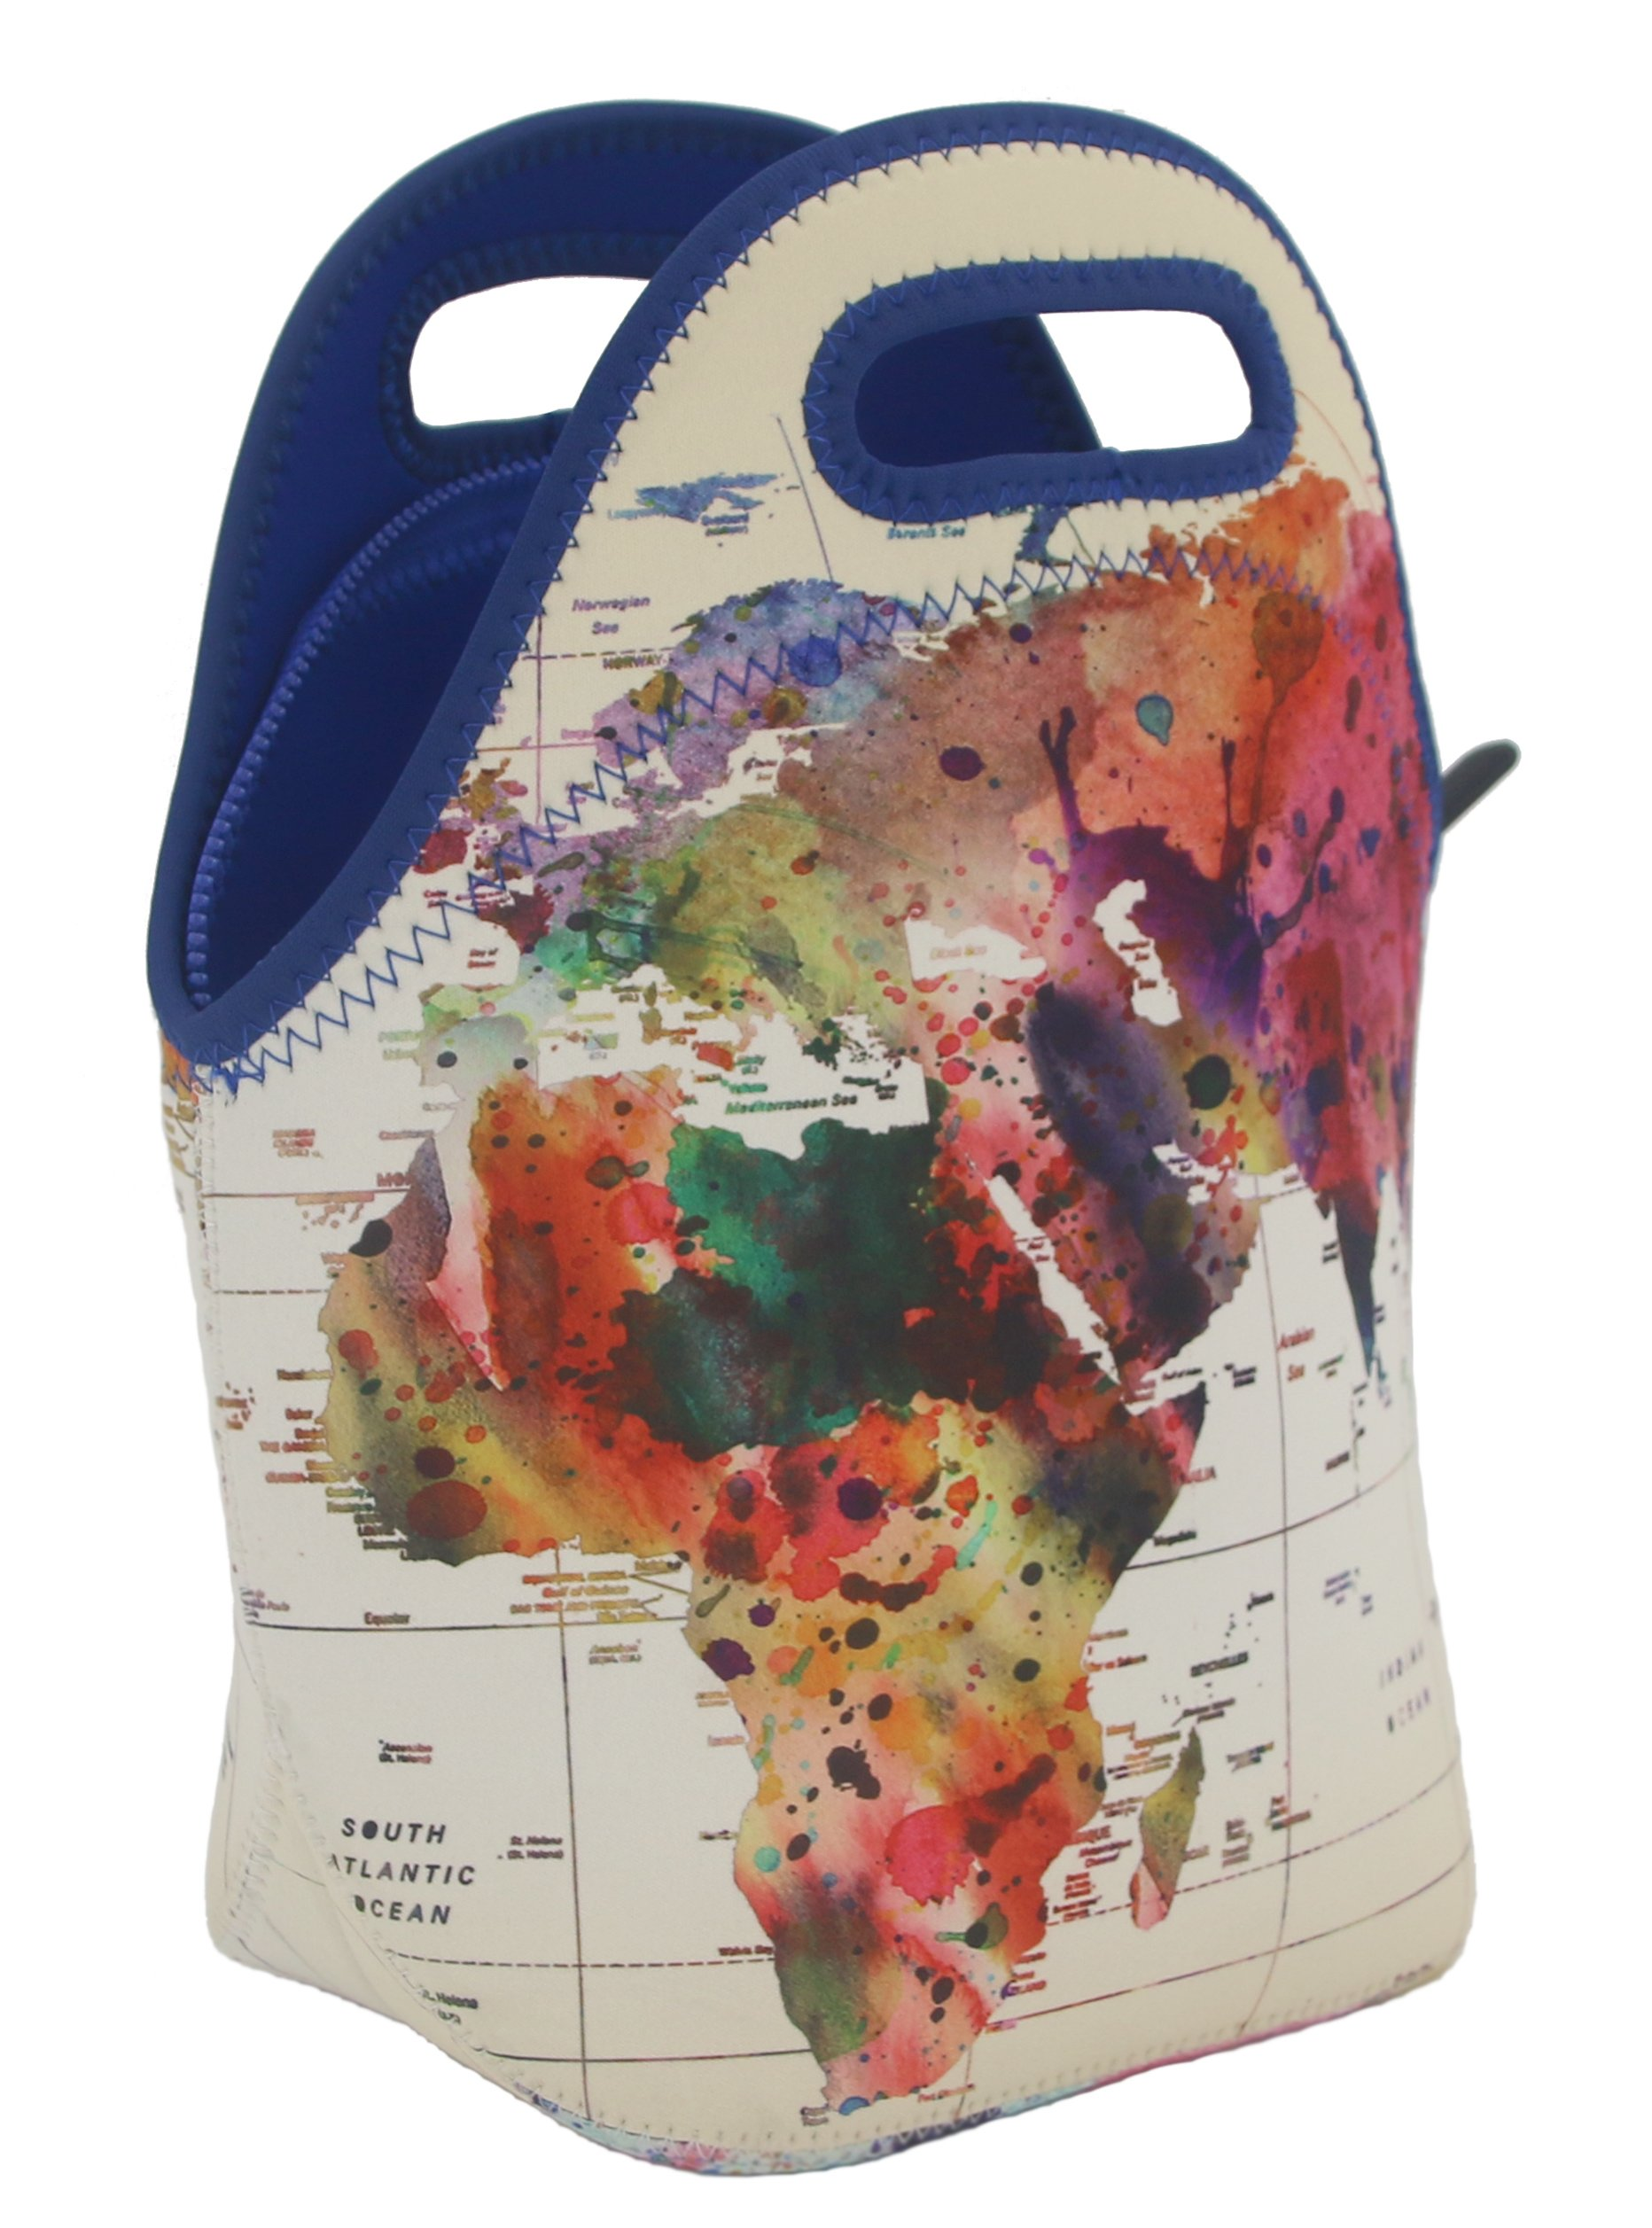 ART OF LUNCH Insulated Neoprene Lunch Bag for Women, Men and Kids - Reusable Soft Lunch Tote for Work and School - All Proceeds Support the World Summit - Design by Mark Ashkenazi (Israel) - World Map